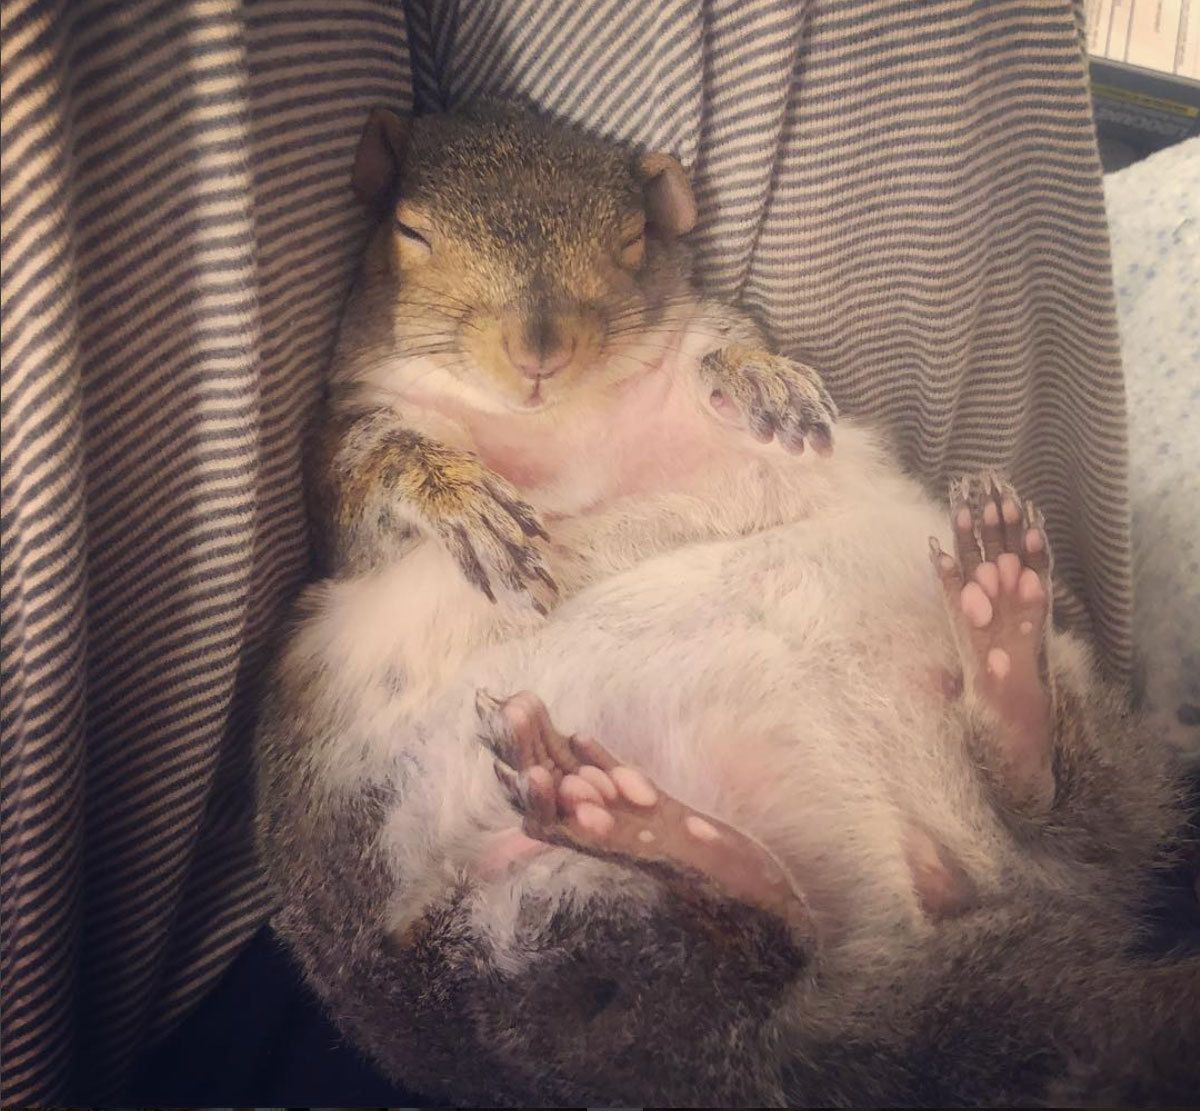 How a pair of wildlife rescuers ended up with a chubby pet squirrel named Thumbelina